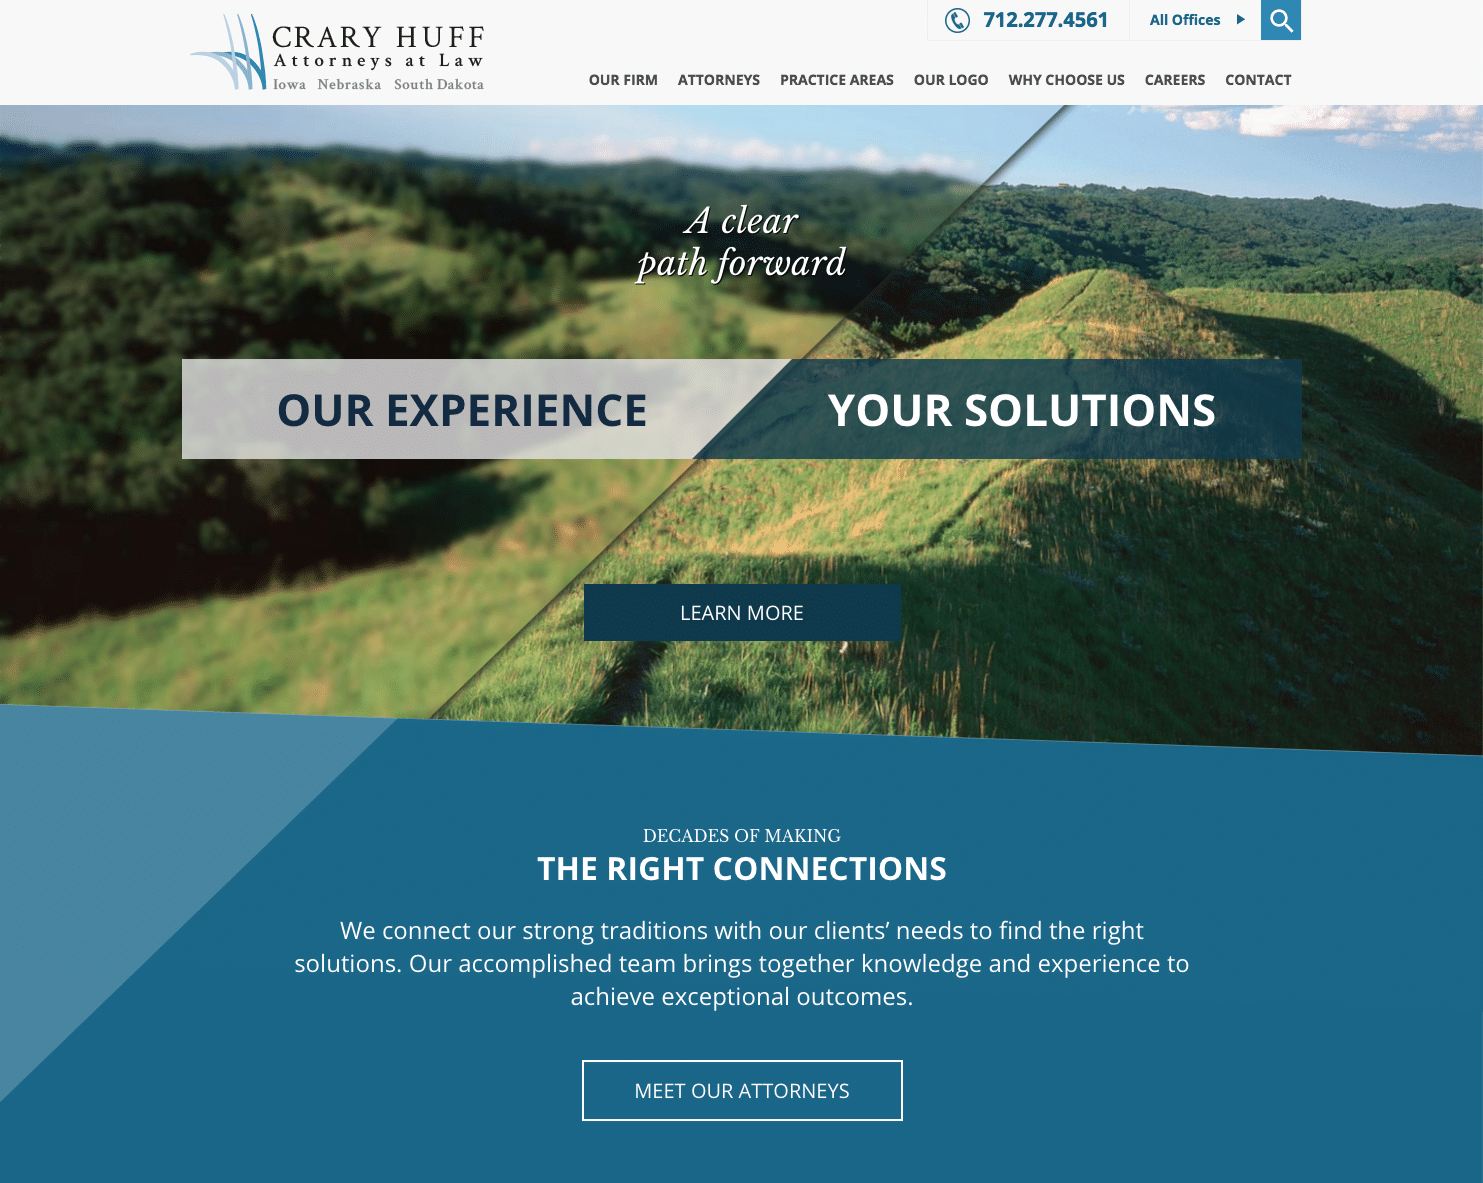 Crary Huff Law Firm - Business Website Design Example